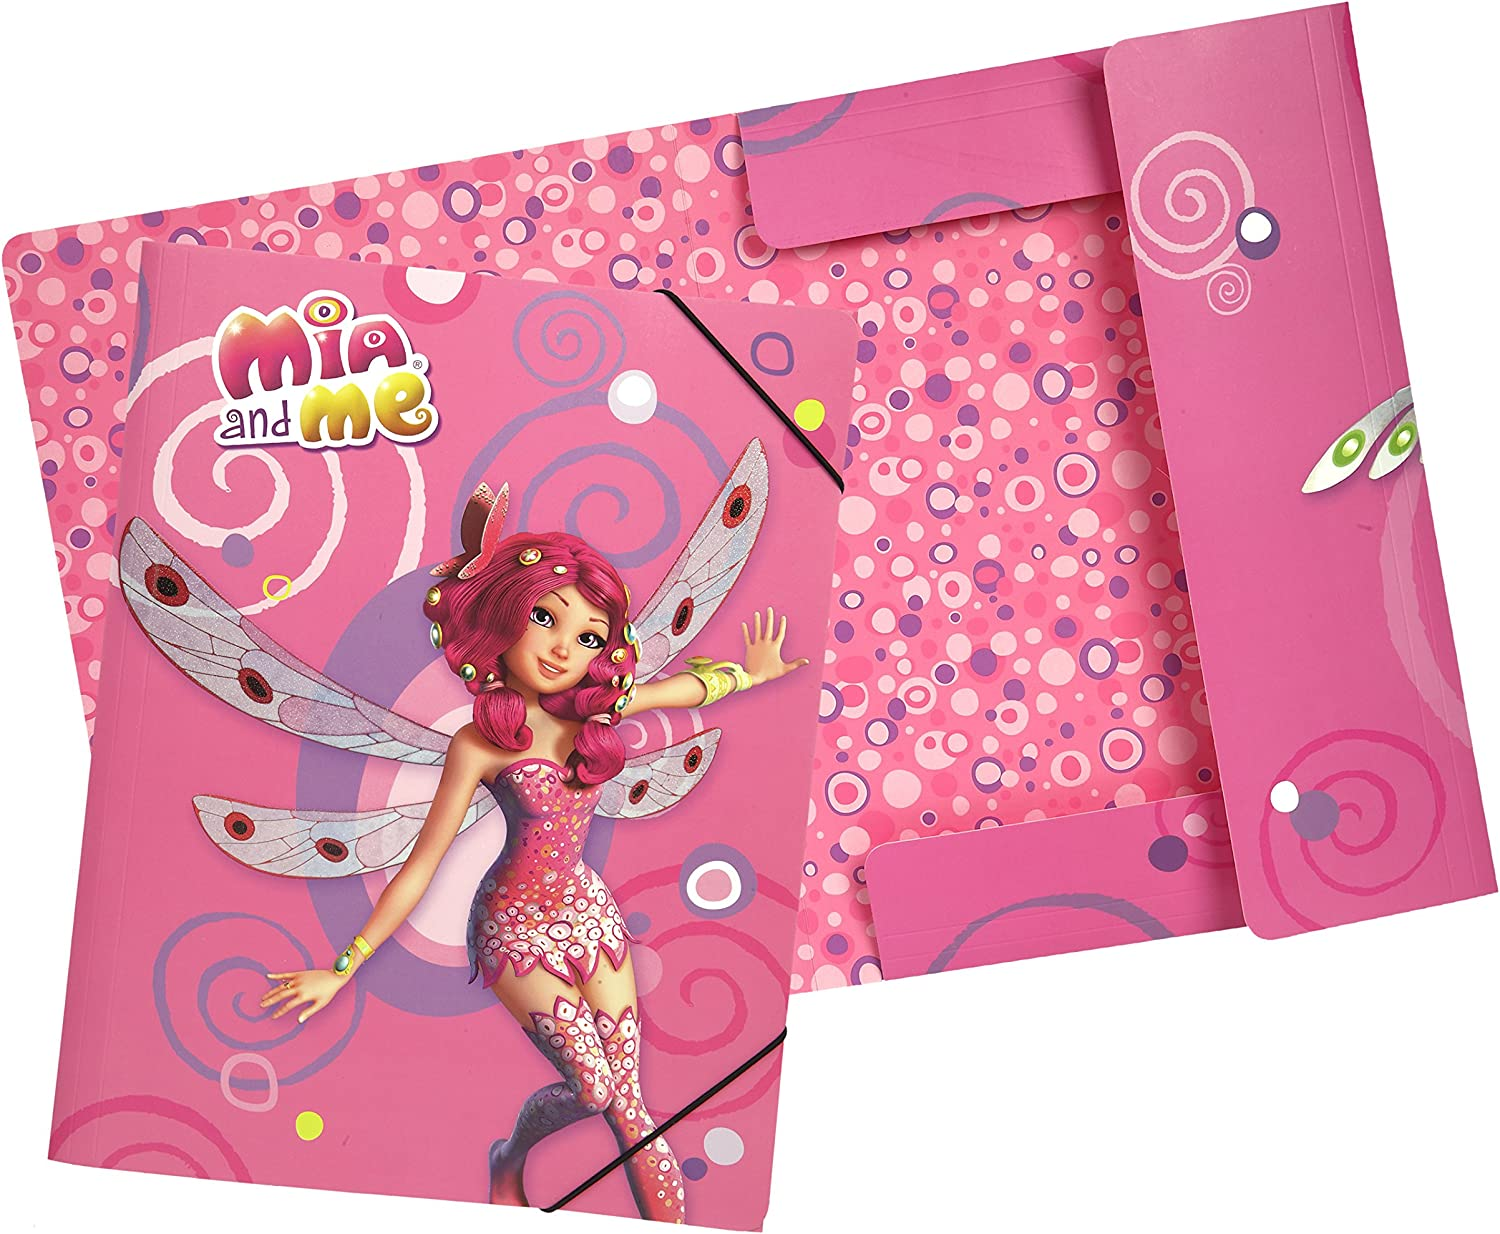 Undercover MMKO0300 Mia and Me Gummizugmappe A4